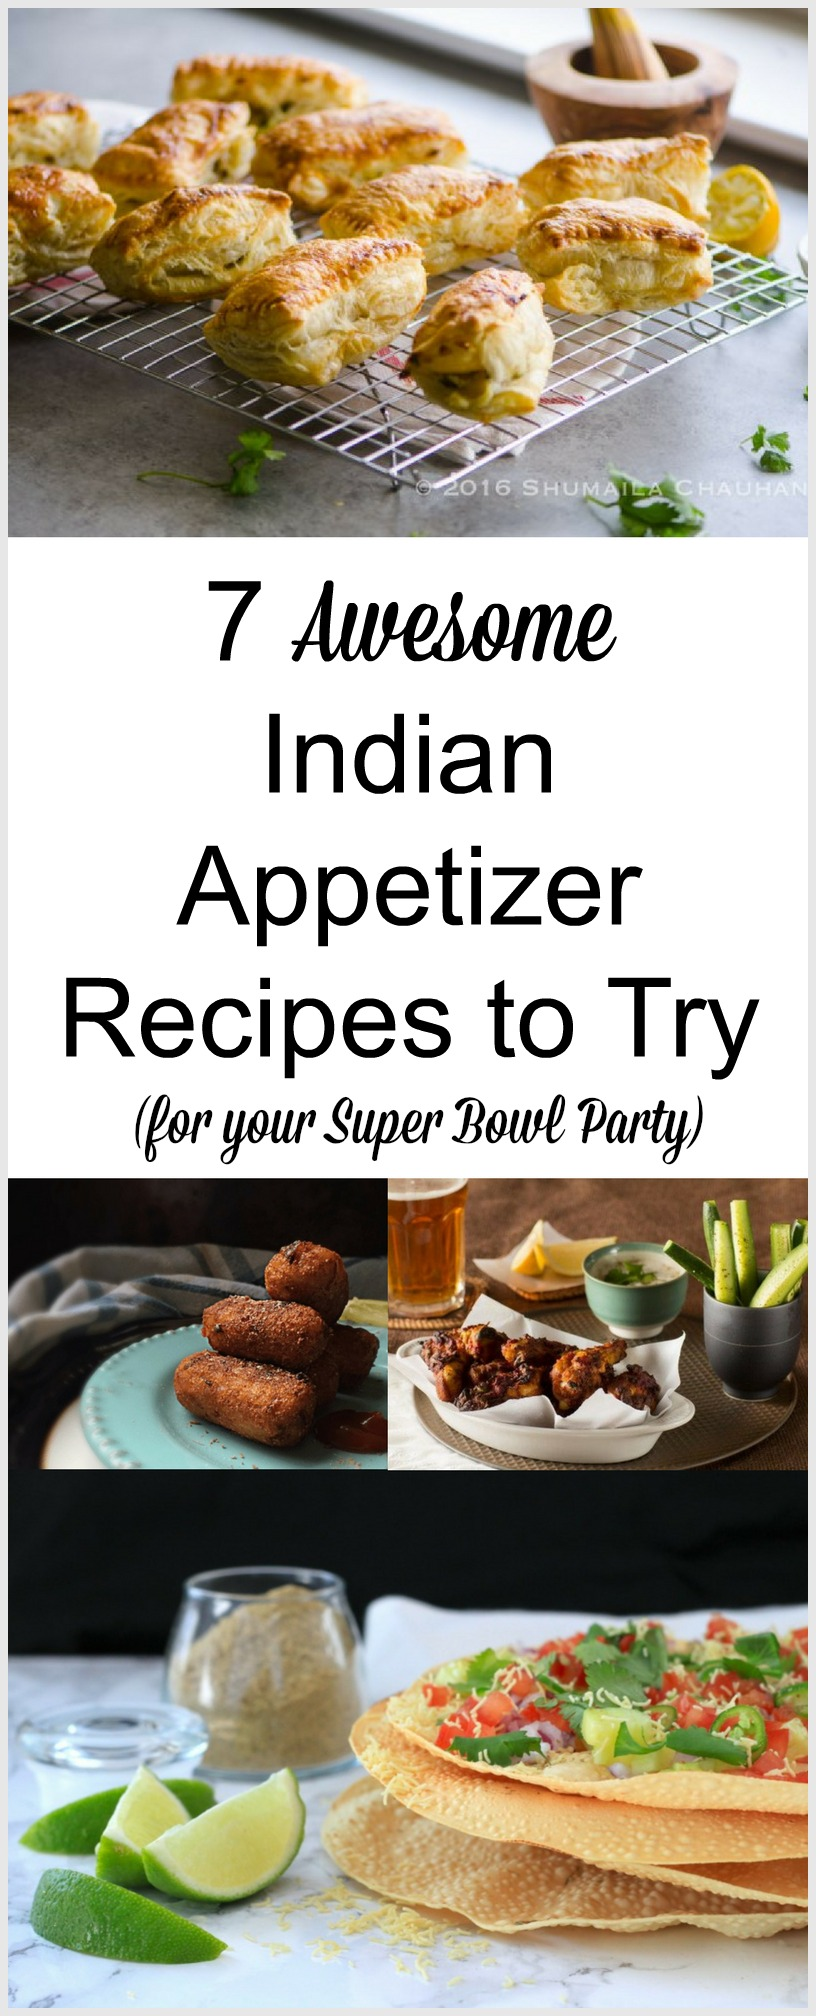 Indian Appetizer Recipes to try for Your Super Bowl Party